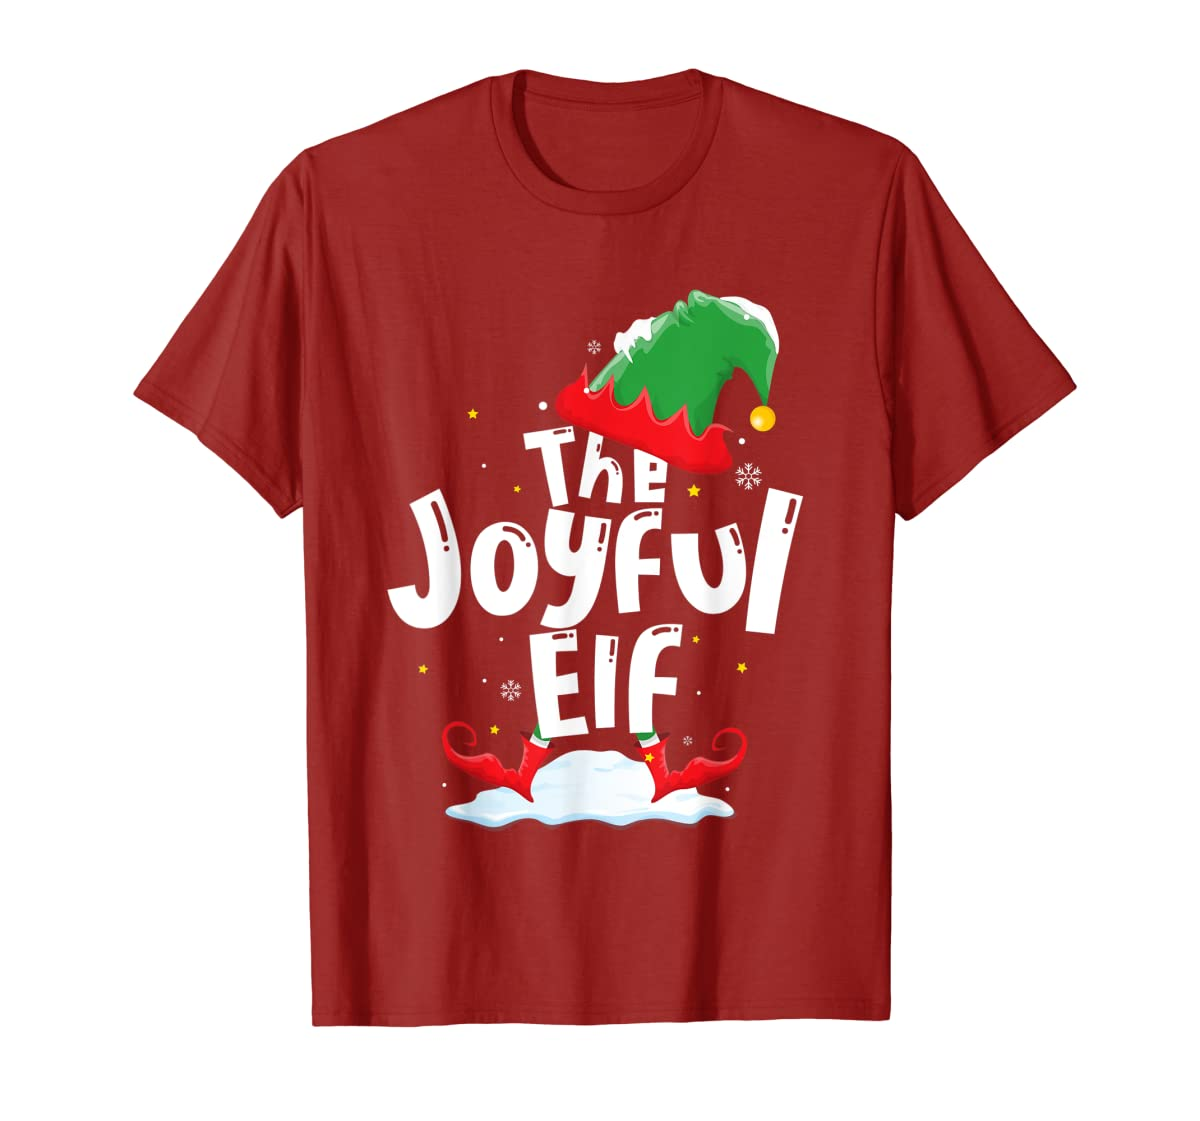 The Joyful Elf Group Matching Family Christmas Gifts Holiday T-Shirt-Men's T-Shirt-Red